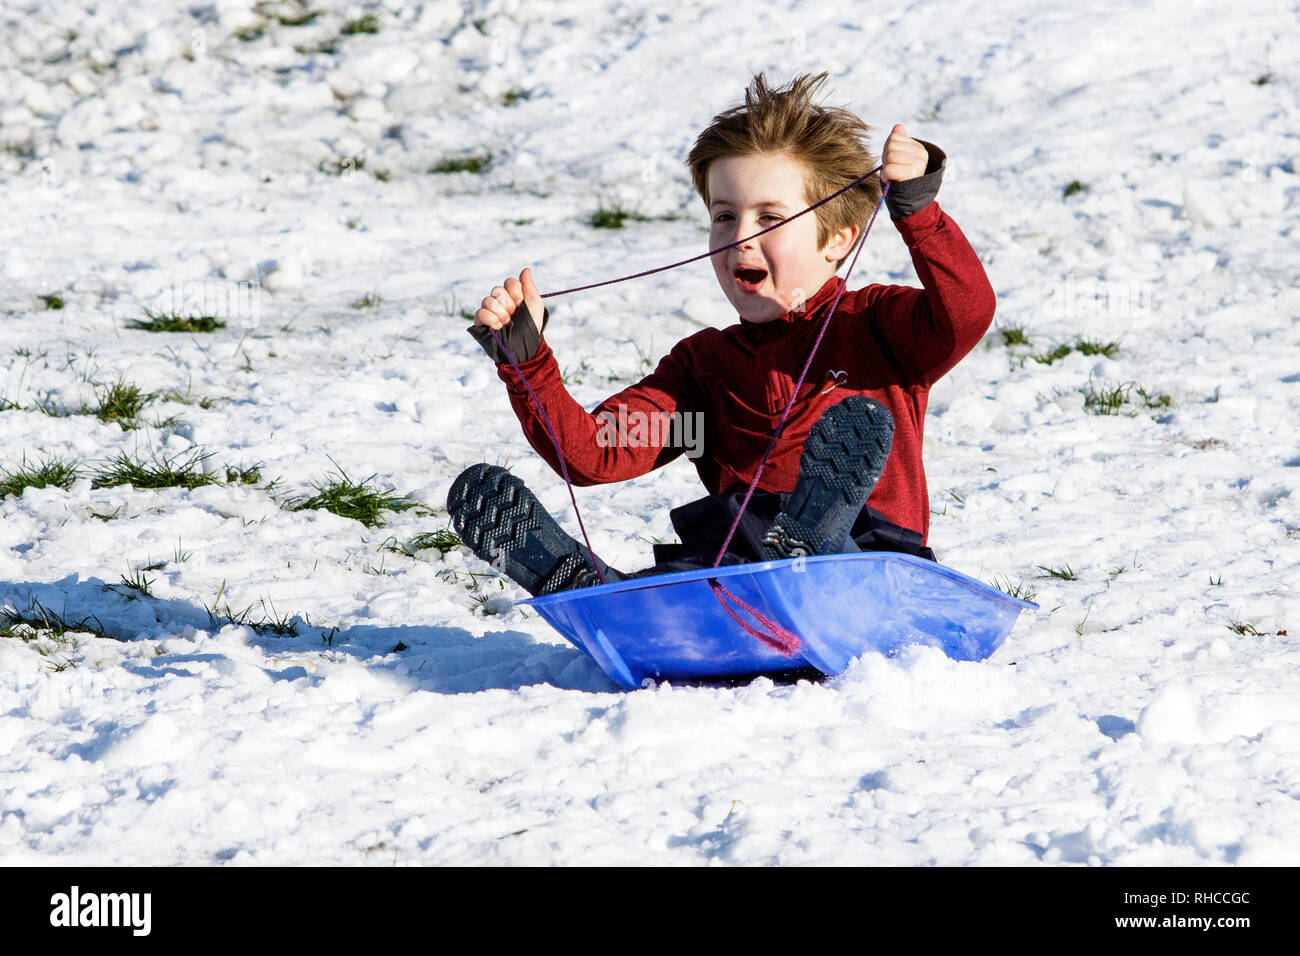 chippenham-wiltshire-uk-2nd-february-2019-a-boy-enjoying-the-snow-before-it-thaws-is-pictured-in-a-local-park-in-chippenham-as-he-speeds-down-a-hill-on-a-sledge-credit-lynchpicsalamy-live-news-RHCCGC.jpg